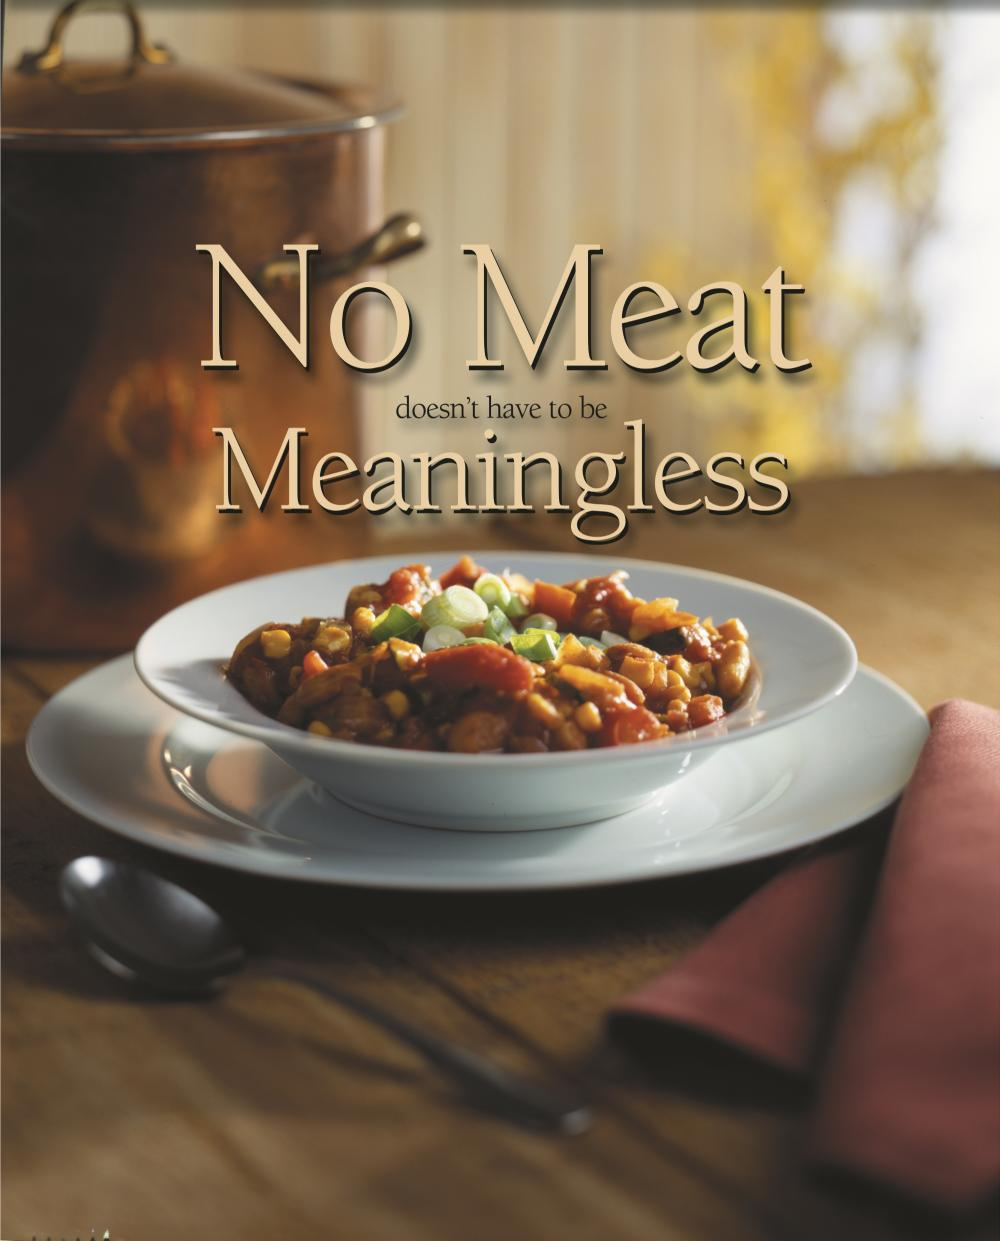 No Meat doesn't have to be Meaningless